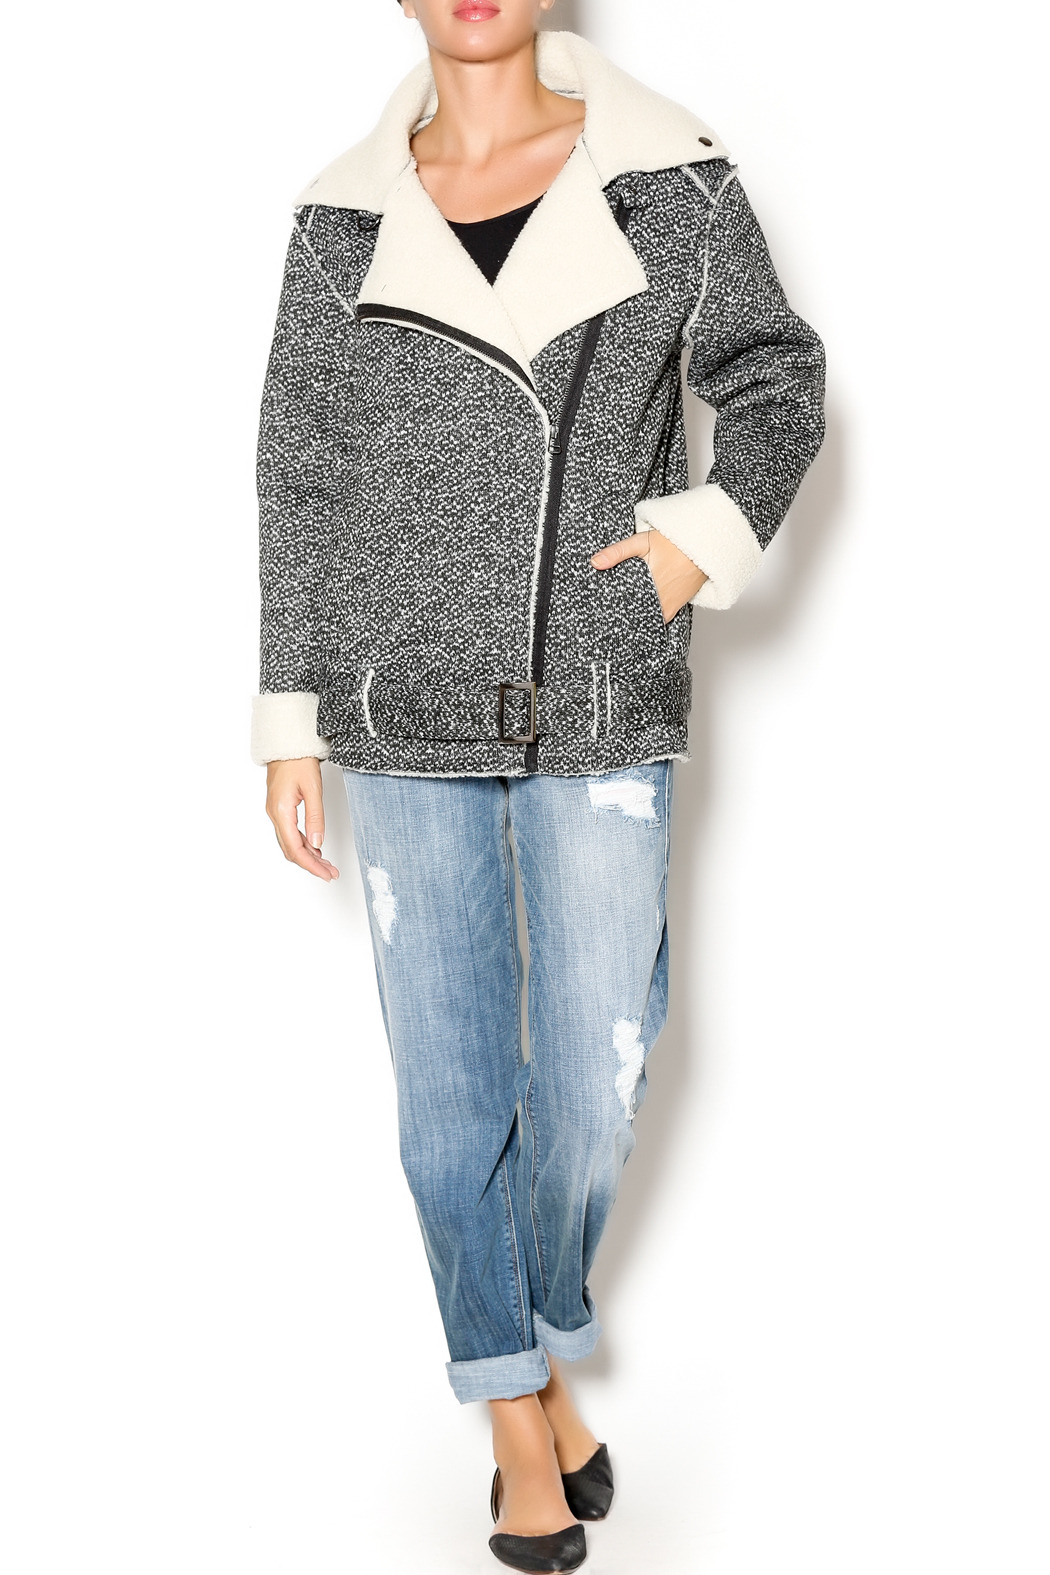 J.O.A. Faux Shearling Jacket - Front Full Image